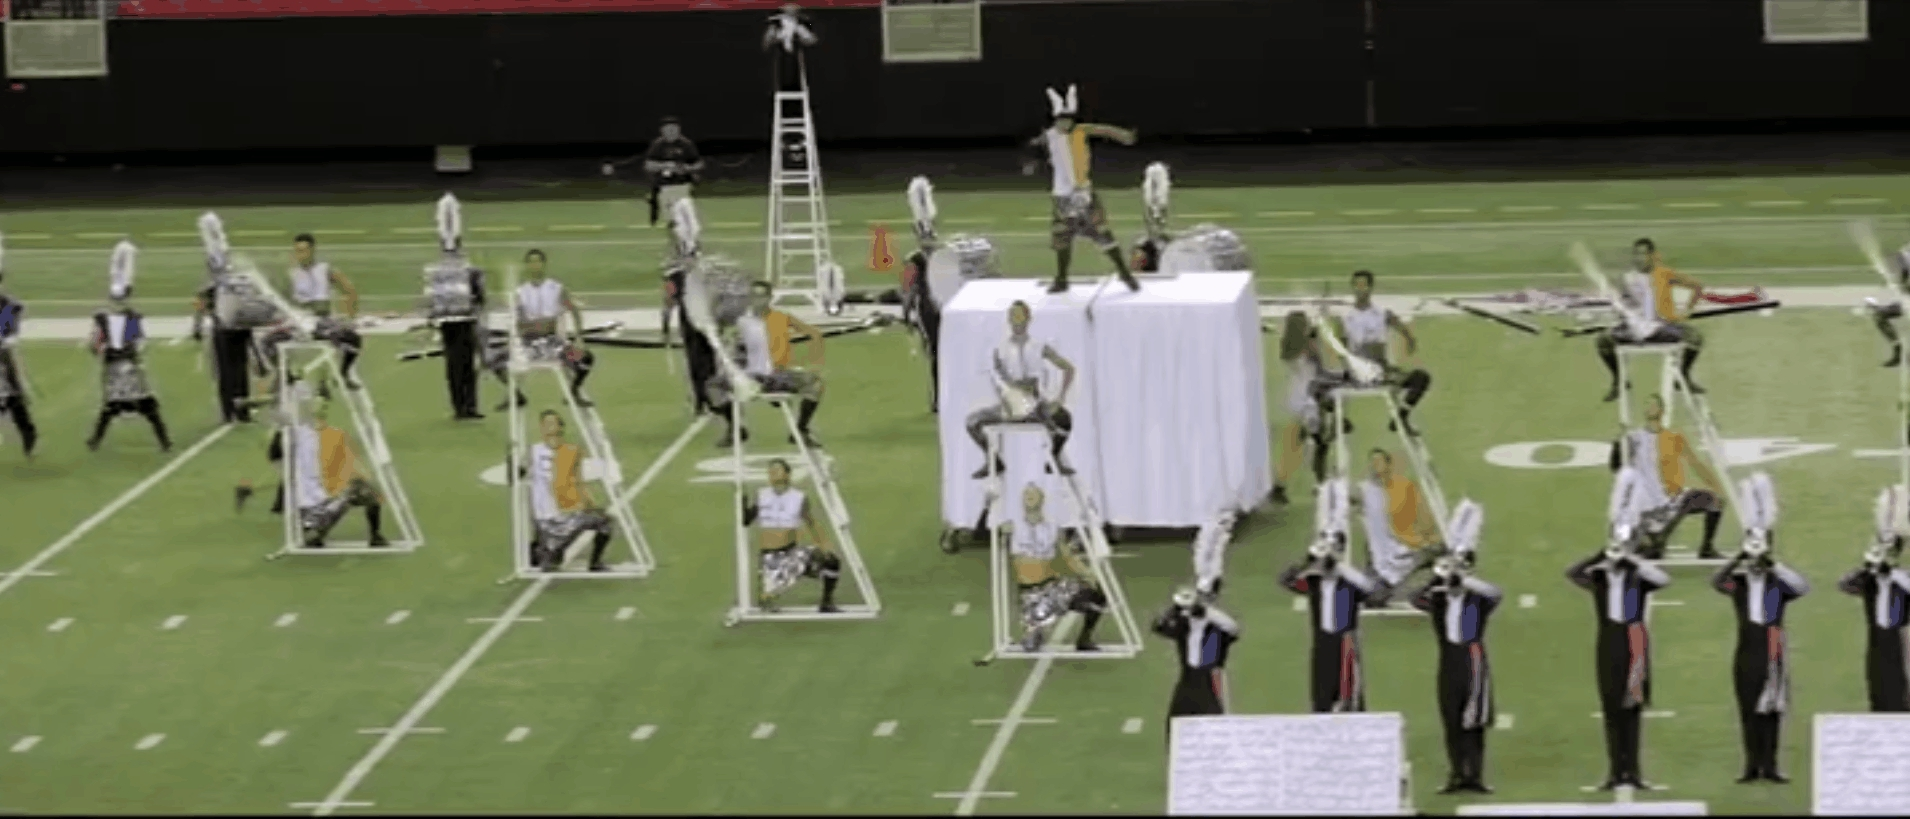 drumcorps, woahdude,  GIFs